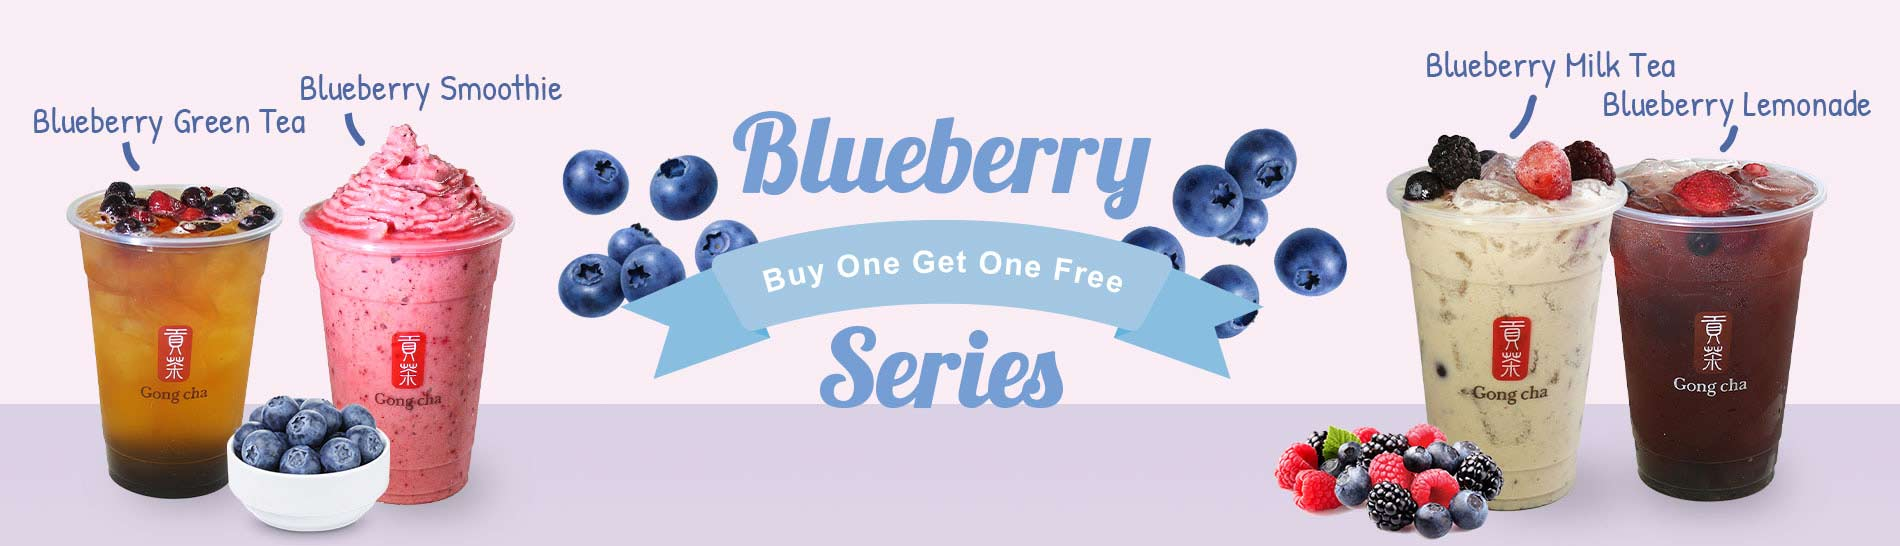 Blueberry Series - Buy One Get One Free